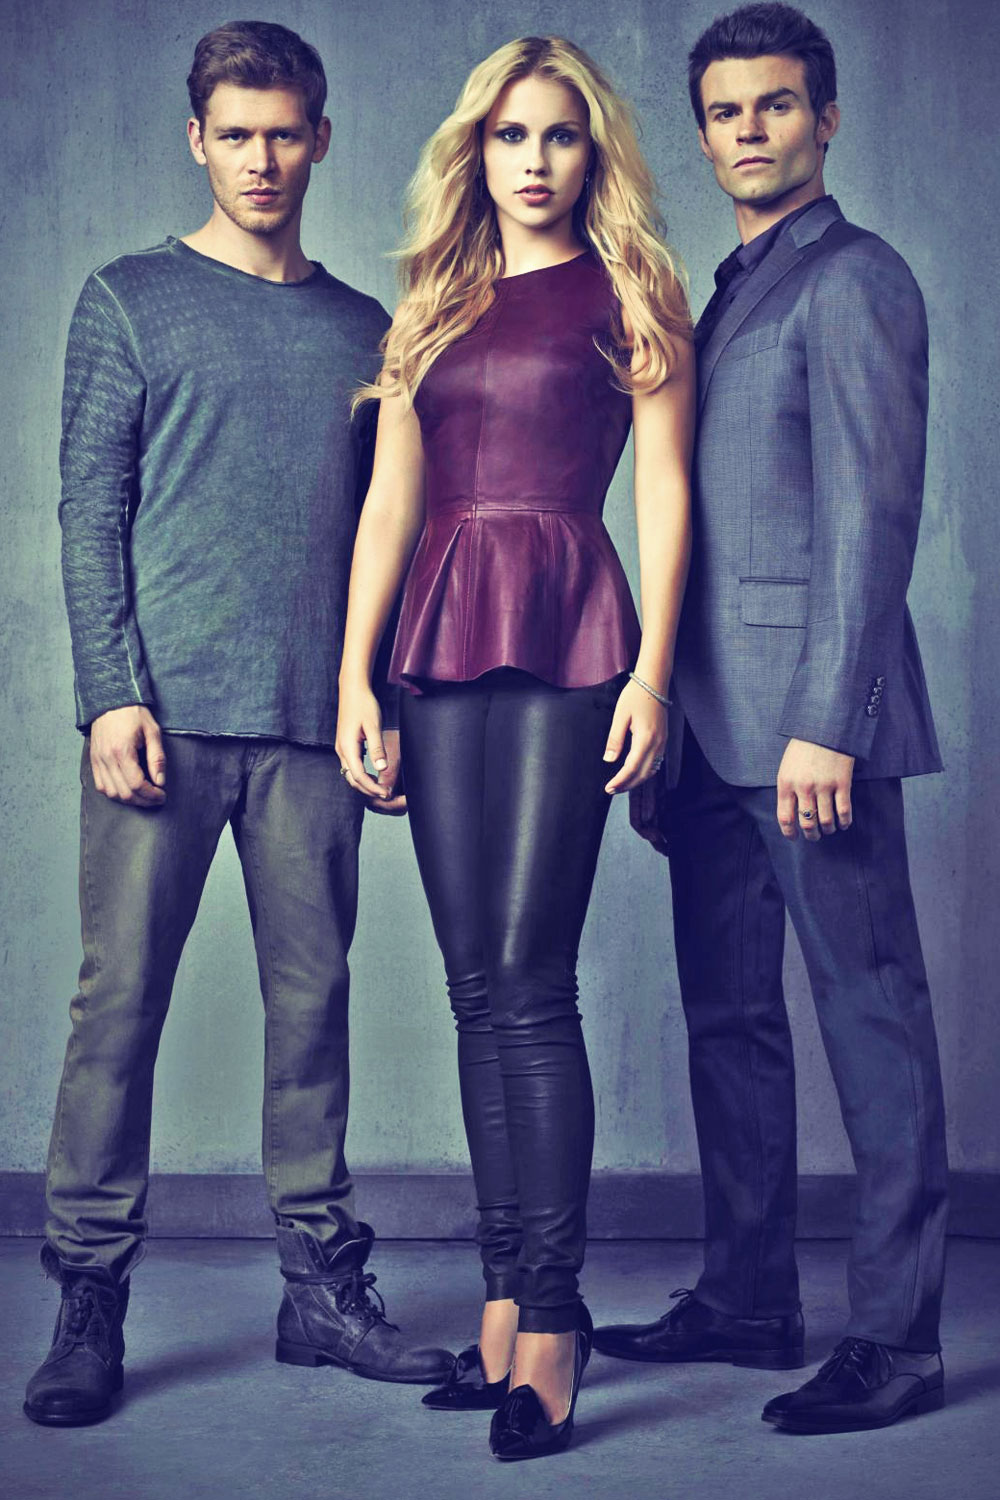 Claire Holt photosooting for The Vampire Diaries tv series promo